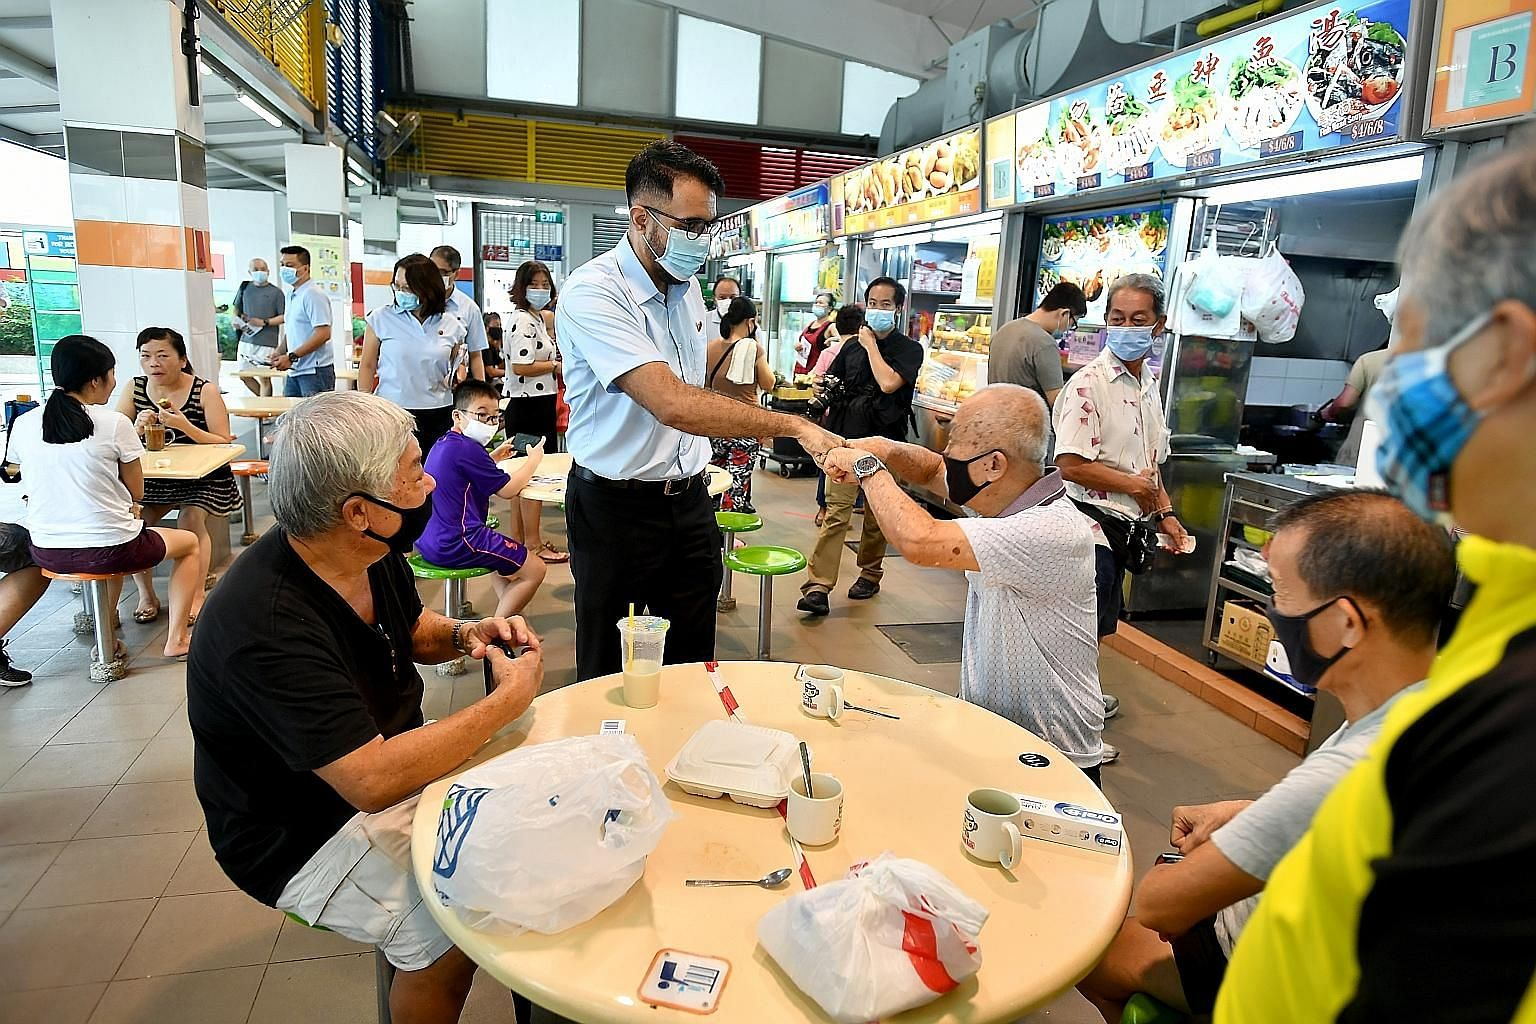 Workers' Party (WP) chief Pritam Singh greeting Bedok residents during the party's walkabout yesterday at the Bedok North Market and Food Centre. WP has revealed the identities of its candidates in only Aljunied GRC and Hougang SMC so far.